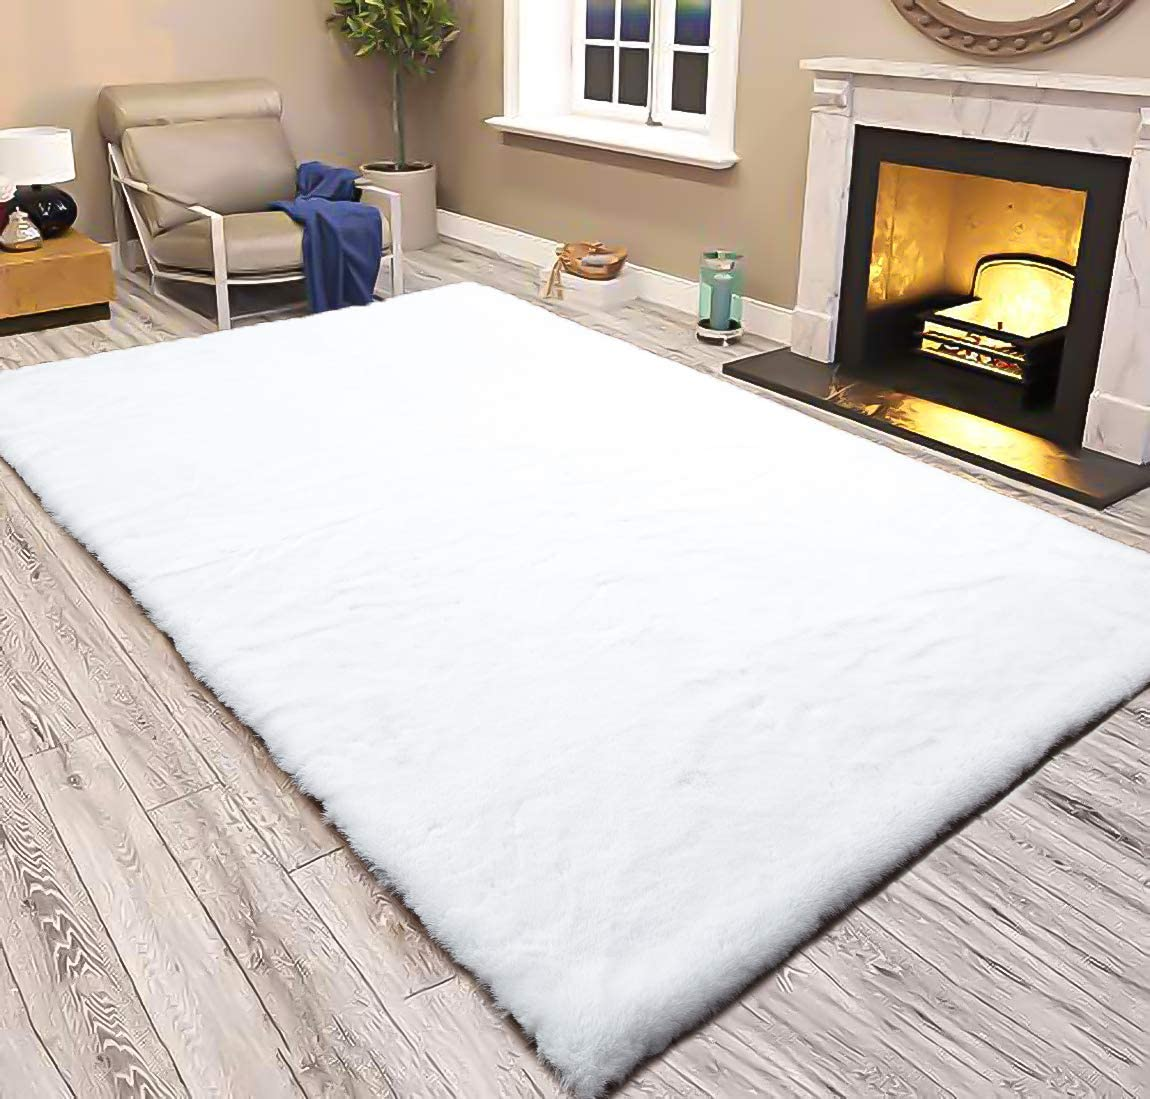 LOCHAS Ultra Soft Faux Fur Area Rugs for Bedroom 4×6 Feet, Fluffy Bedside Rug Mat for Kids Nursery Rugs Living Room Carpets Floor, White